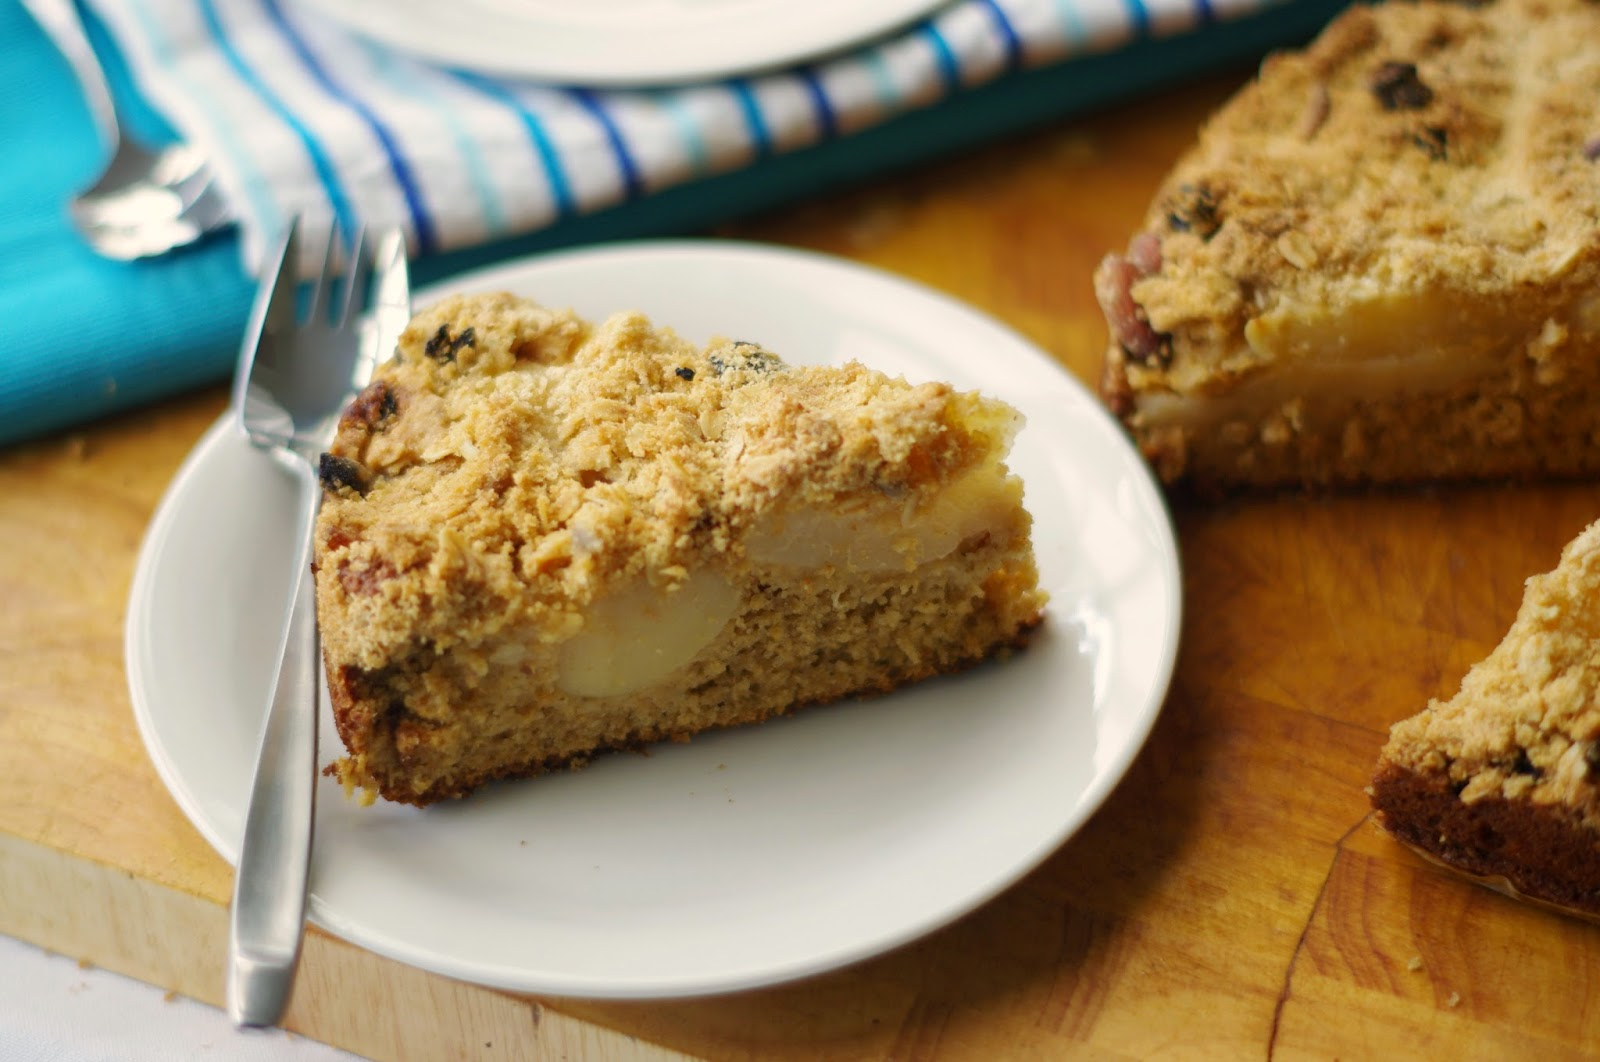 Pear and muesli crumble cake